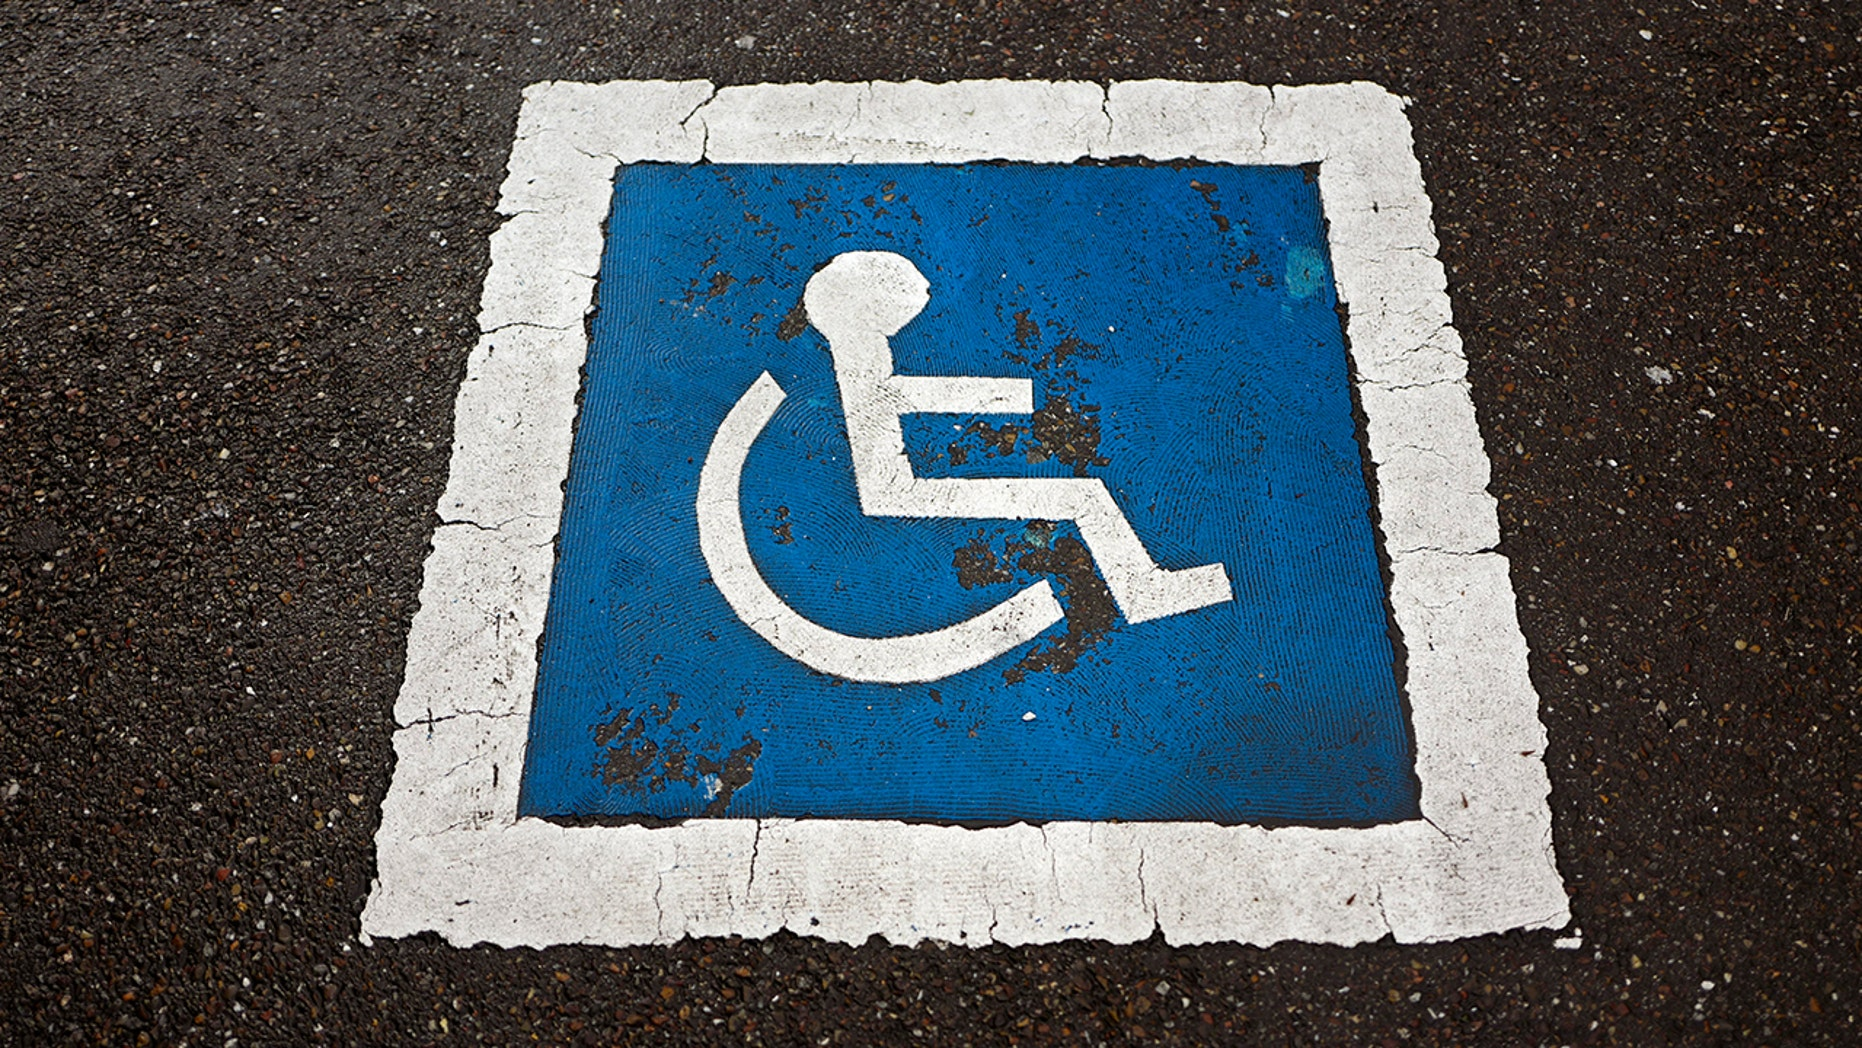 The YCC Calgary International Airport came under fire for displacing disabled parking spaces to accommodate a marketing partnership.